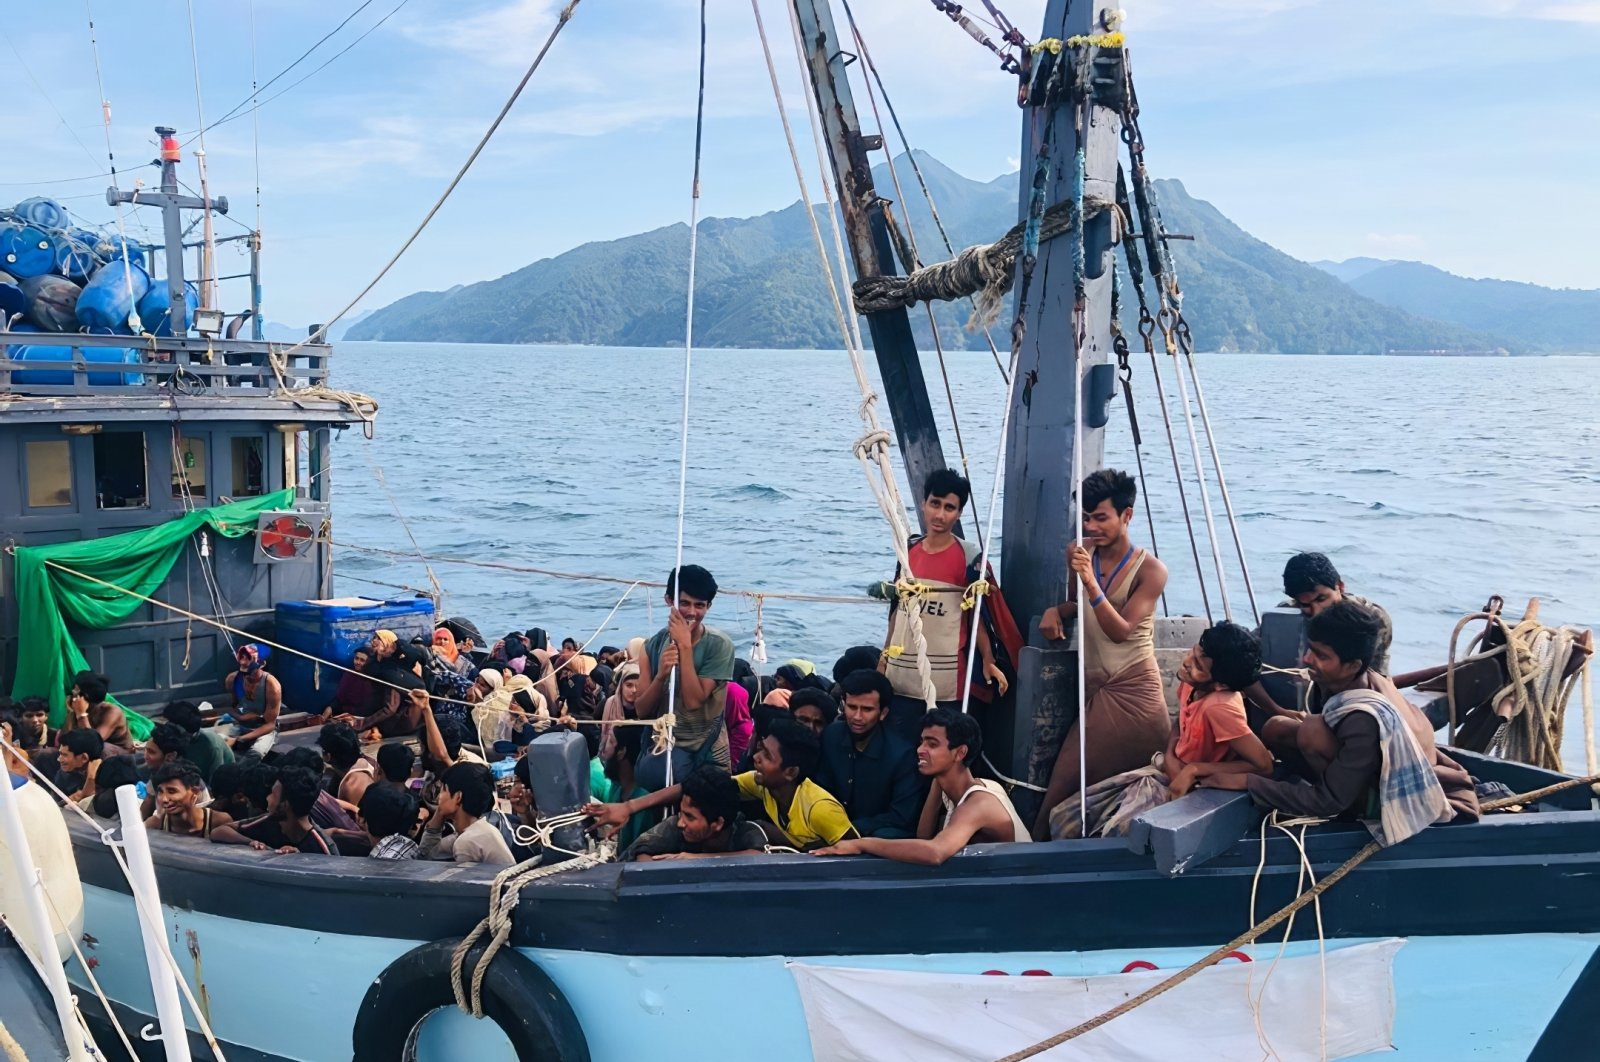 A wooden boat carries suspected Rohingya migrants detained in Malaysian territorial waters off the island of Langkawi, Malaysia, April 5, 2020. (Malaysian Maritime Enforcement Agency via AP)